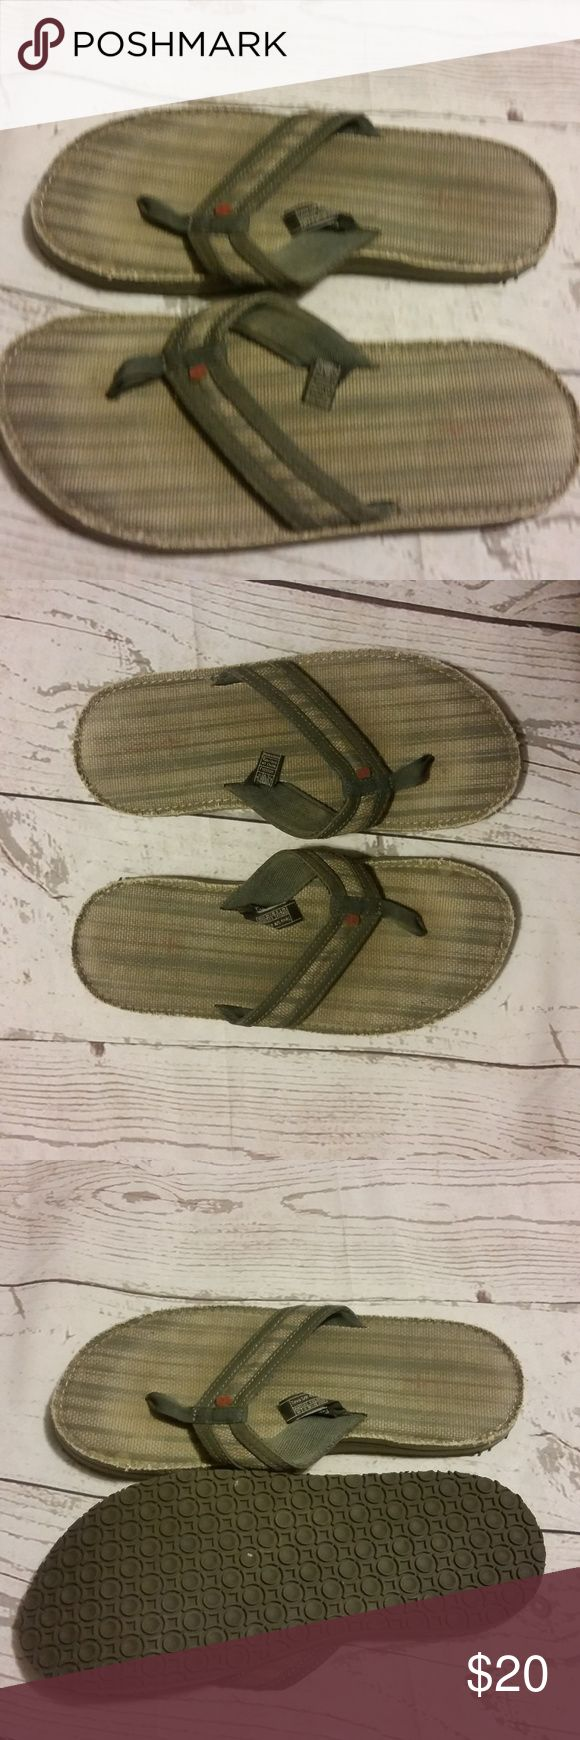 Teva Mens Flip Flops Sandals Gray Size 10 Gently Used Teva Mens Flip Flops Gray US Size 10 EU Size 43  Trusted Seller. Fast shipping.  Please check out my other listings. Items being added daily. Thanks for stopping in!  Posh By Design Teva Shoes Sandals & Flip-Flops